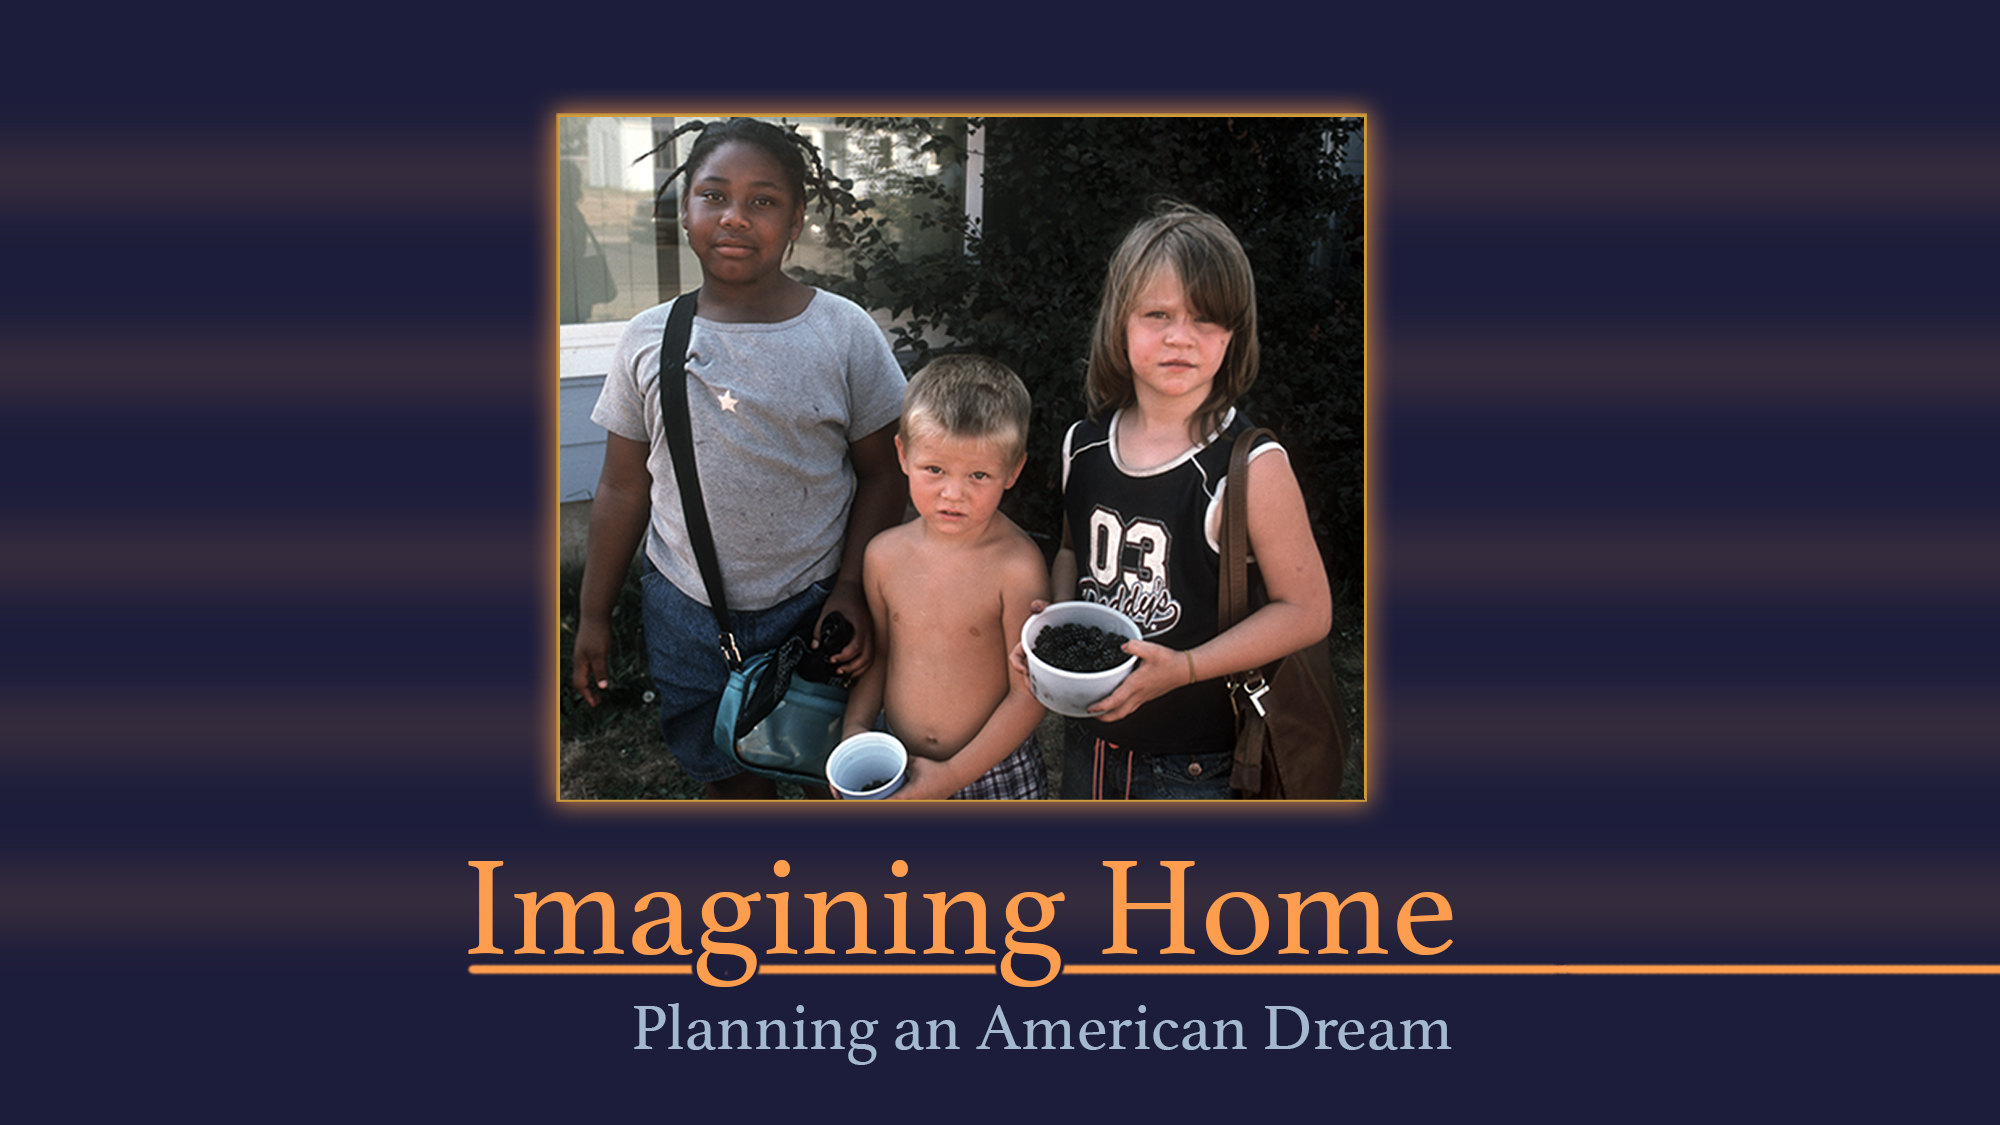 IMAGINING HOME: Planning an American Dream - 2010   Imagining Home  traces the complete transformation of Columbia Villa—a historic, cherished, and maligned Portland, Oregon public housing neighborhood enduring poverty, gang violence, and racial discrimination—yet hoping for a new chance. The film follows several main characters over five years through displacement, relocation, and return to the new development. Despite numerous obstacles, the tenacity and cooperation of residents move the charge to rebuild the soul of their community. Then, when New Columbia is re-inhabited, tensions around race and class threaten the new-found stability. Watch the trailer  here .